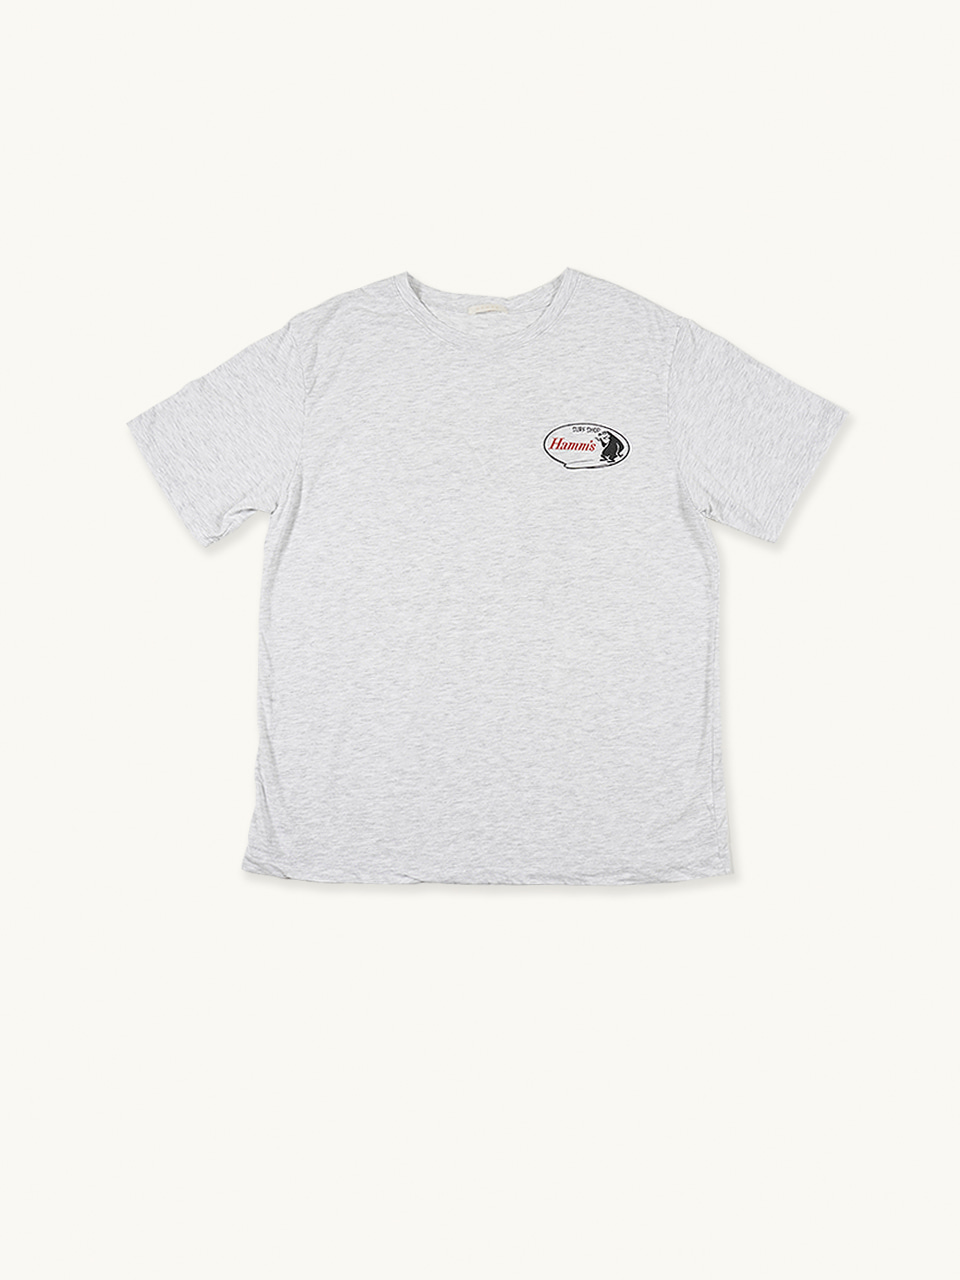 HAMM'S TEE[2COLOR]